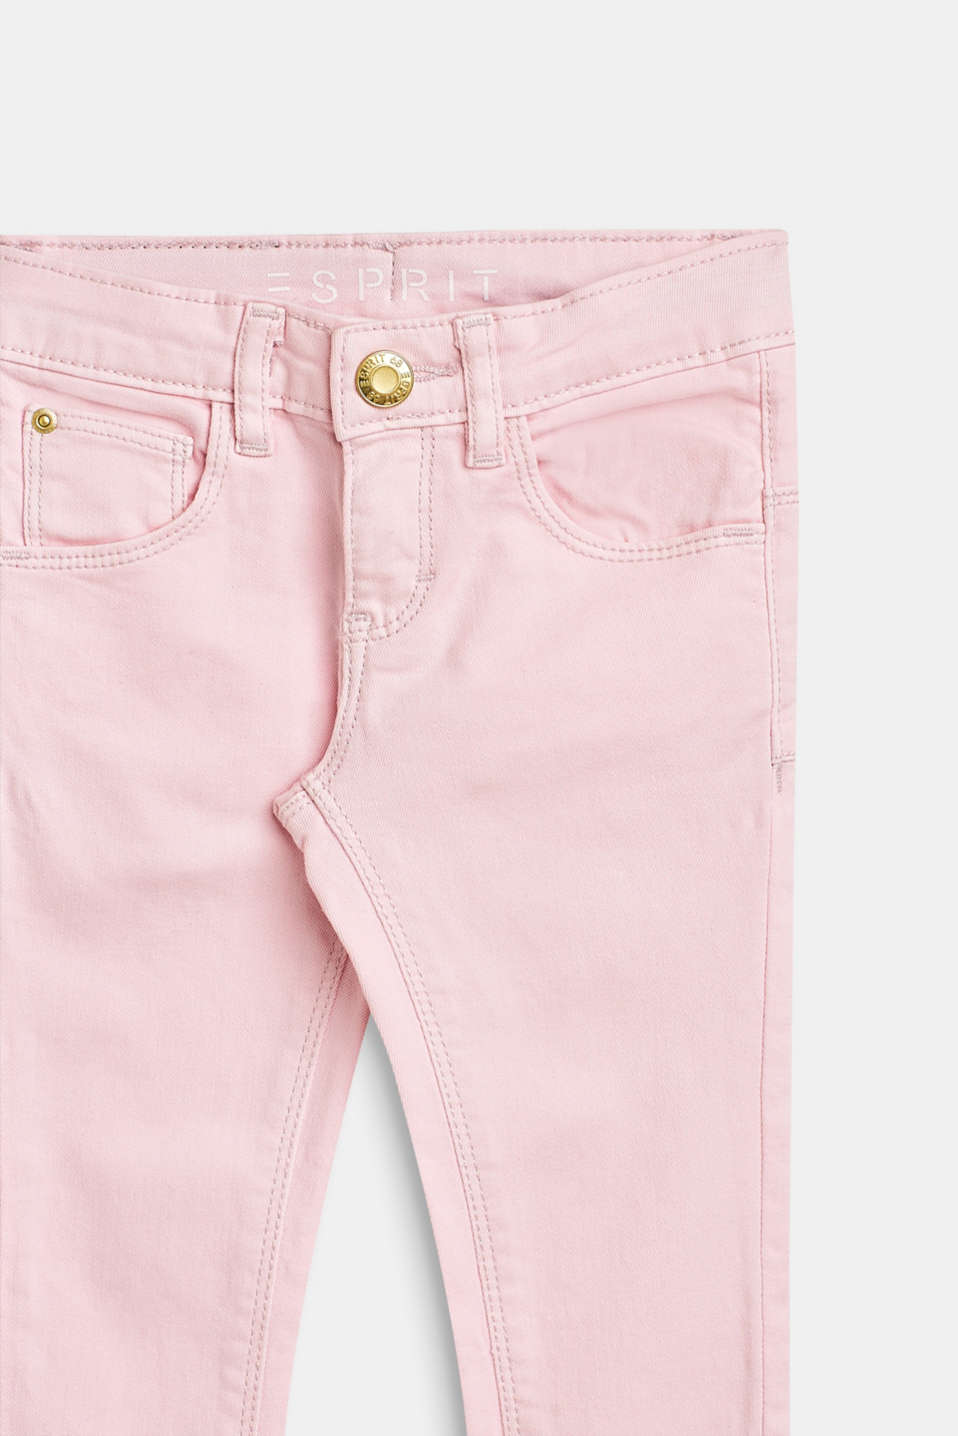 Stretch cotton trousers with an adjustable waistband, BLUSH, detail image number 2